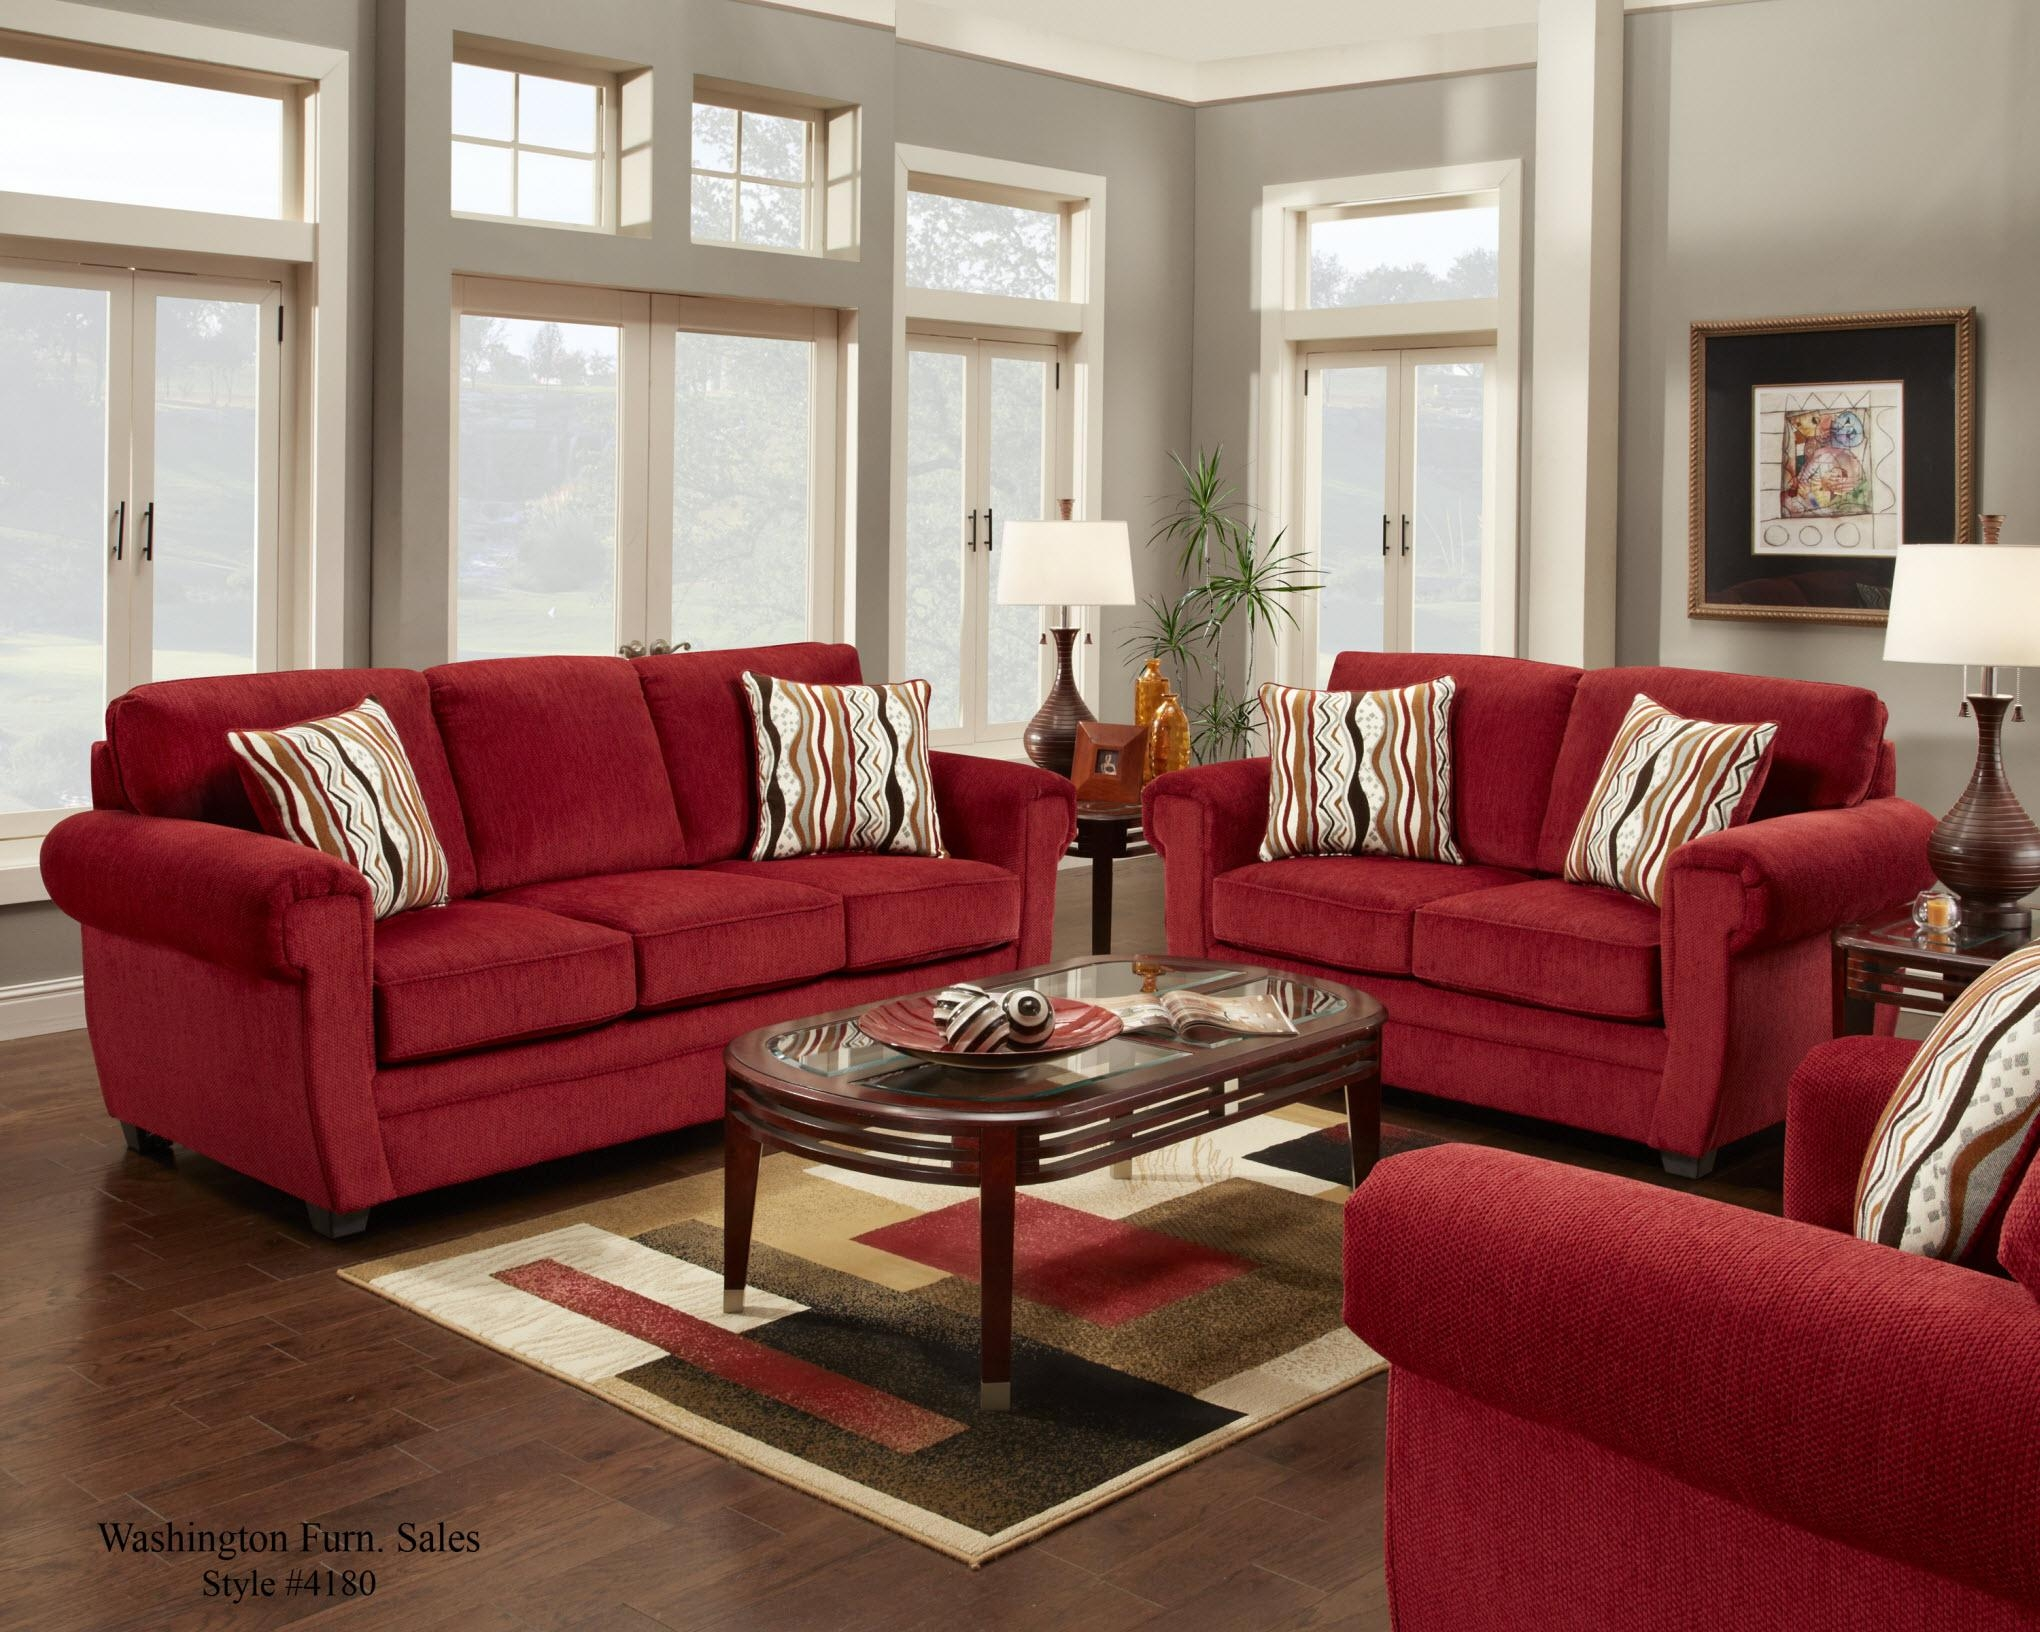 Red Sofa 20 Top Black And Red Sofa Sets Sofa Ideas